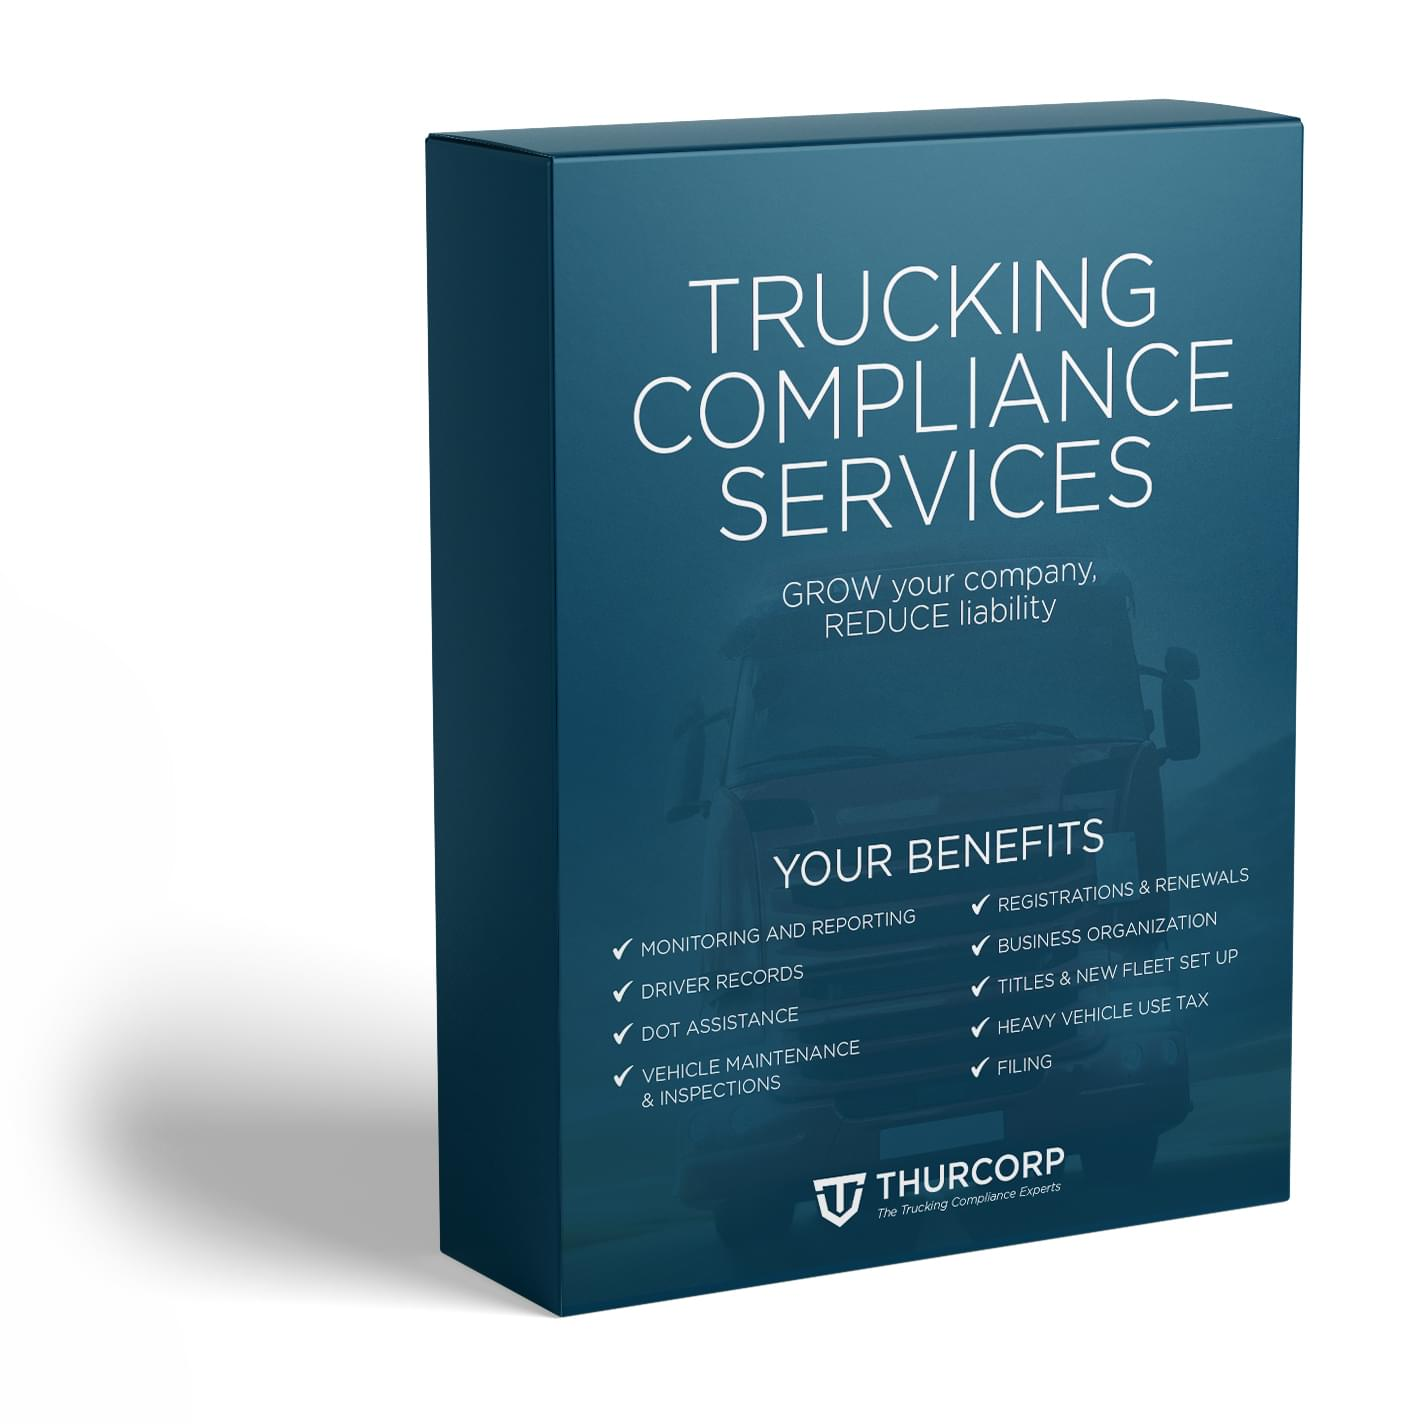 Trucking Compliance Service